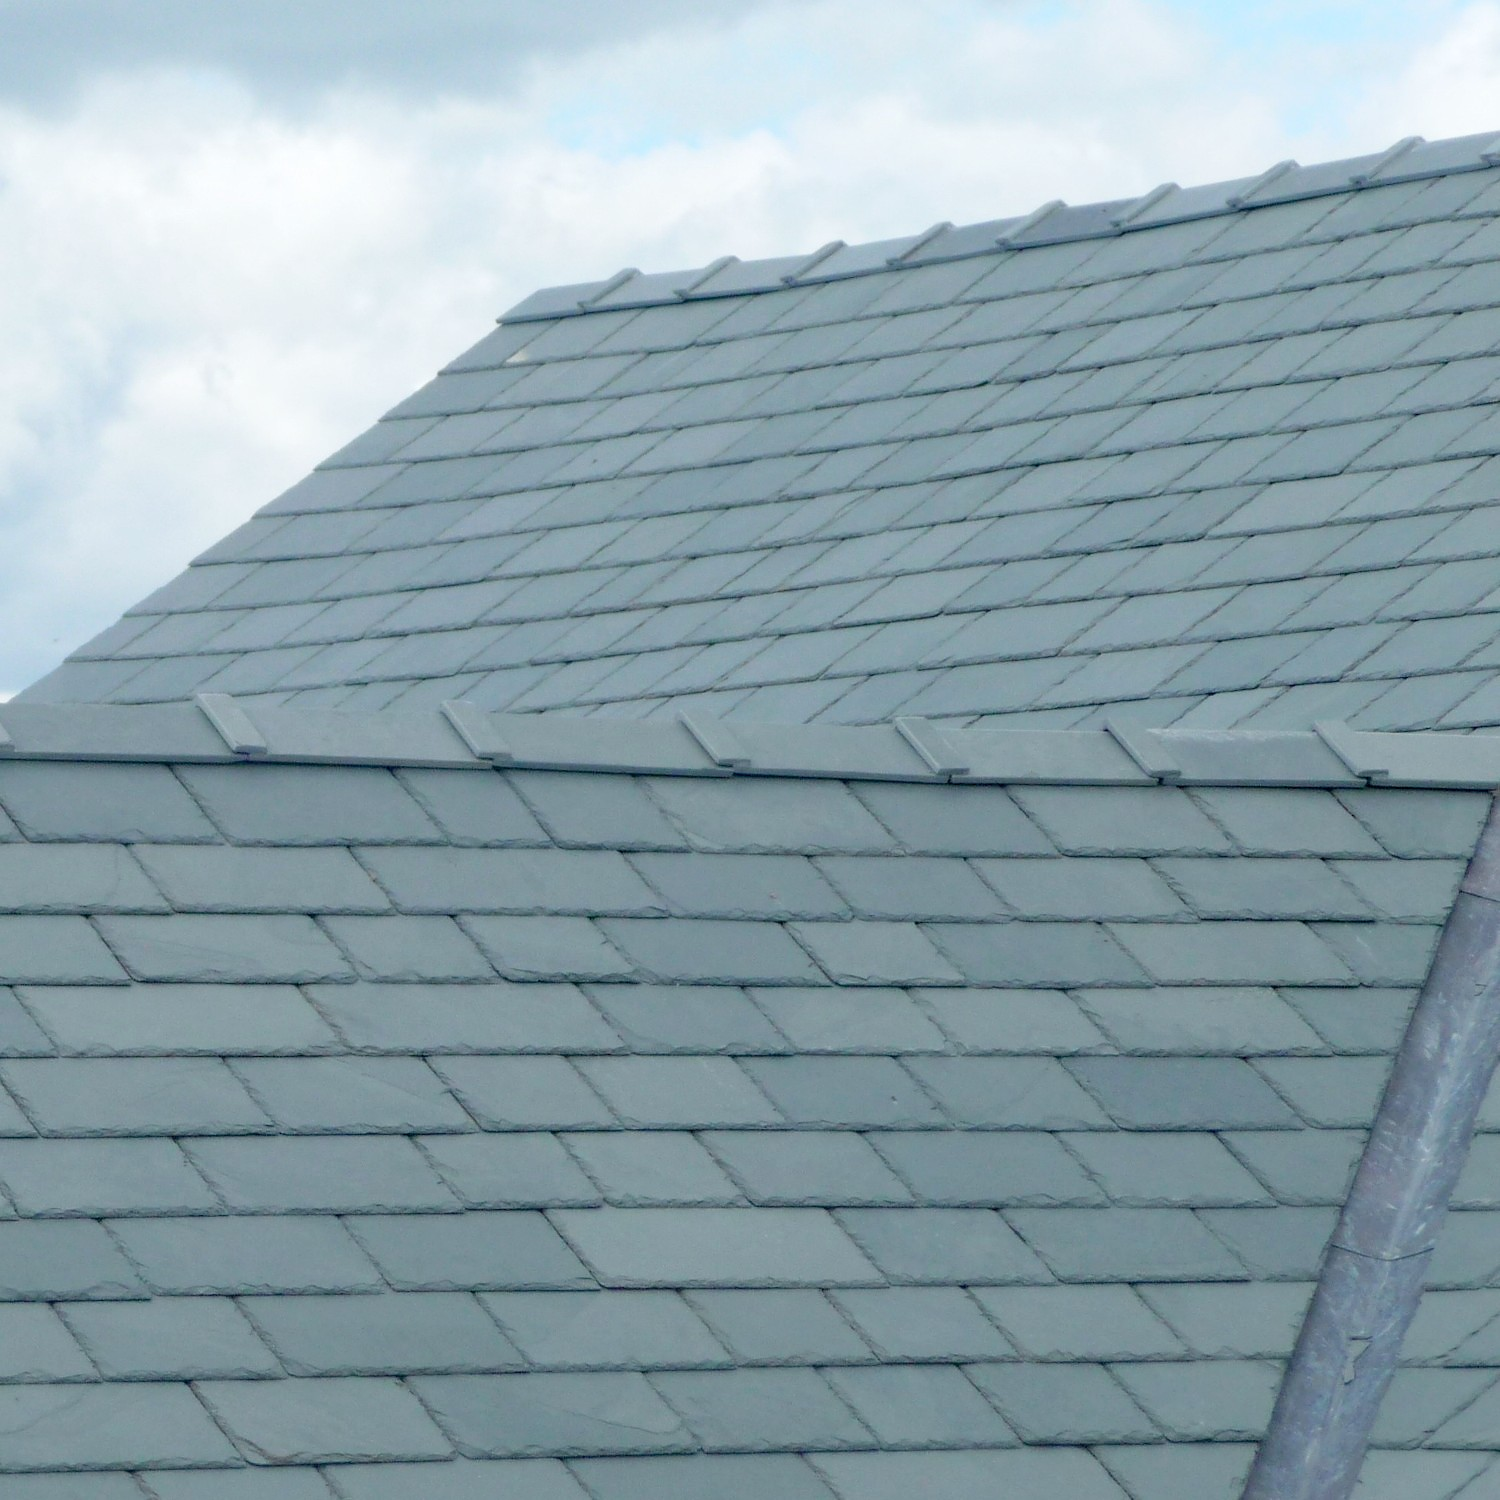 A Look At Ridge Tiles Uk Slate